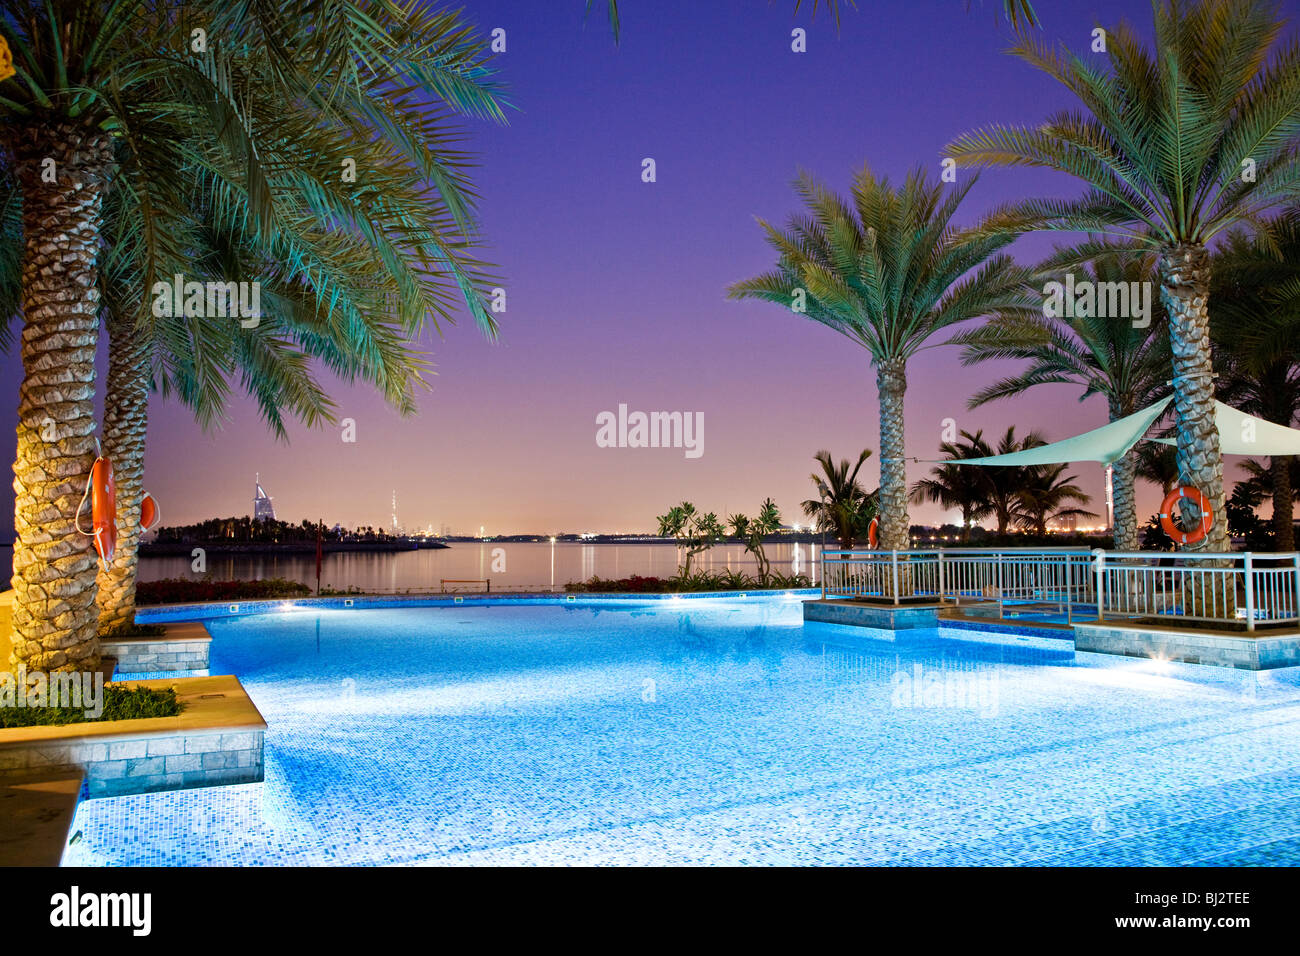 Swimming pool of a beach club on palm island jumeirah in dubai with stock photo royalty free - Palm beach swimming pool ...